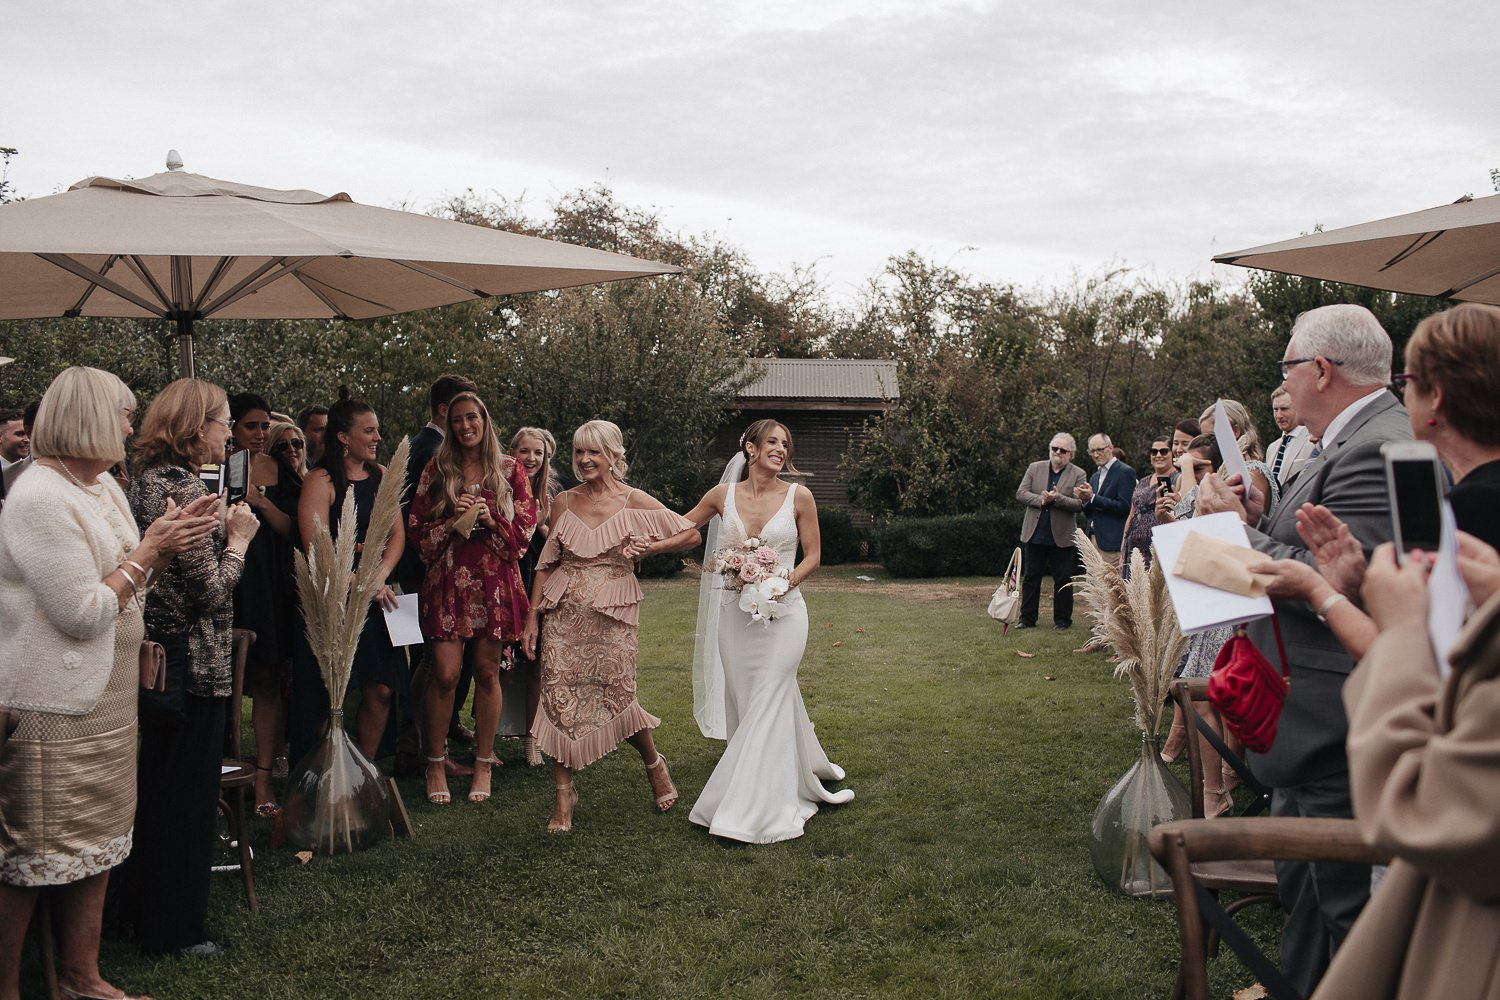 private-property-wedding-relaxed-melbourne-fun-documentary-photography_0074.jpg